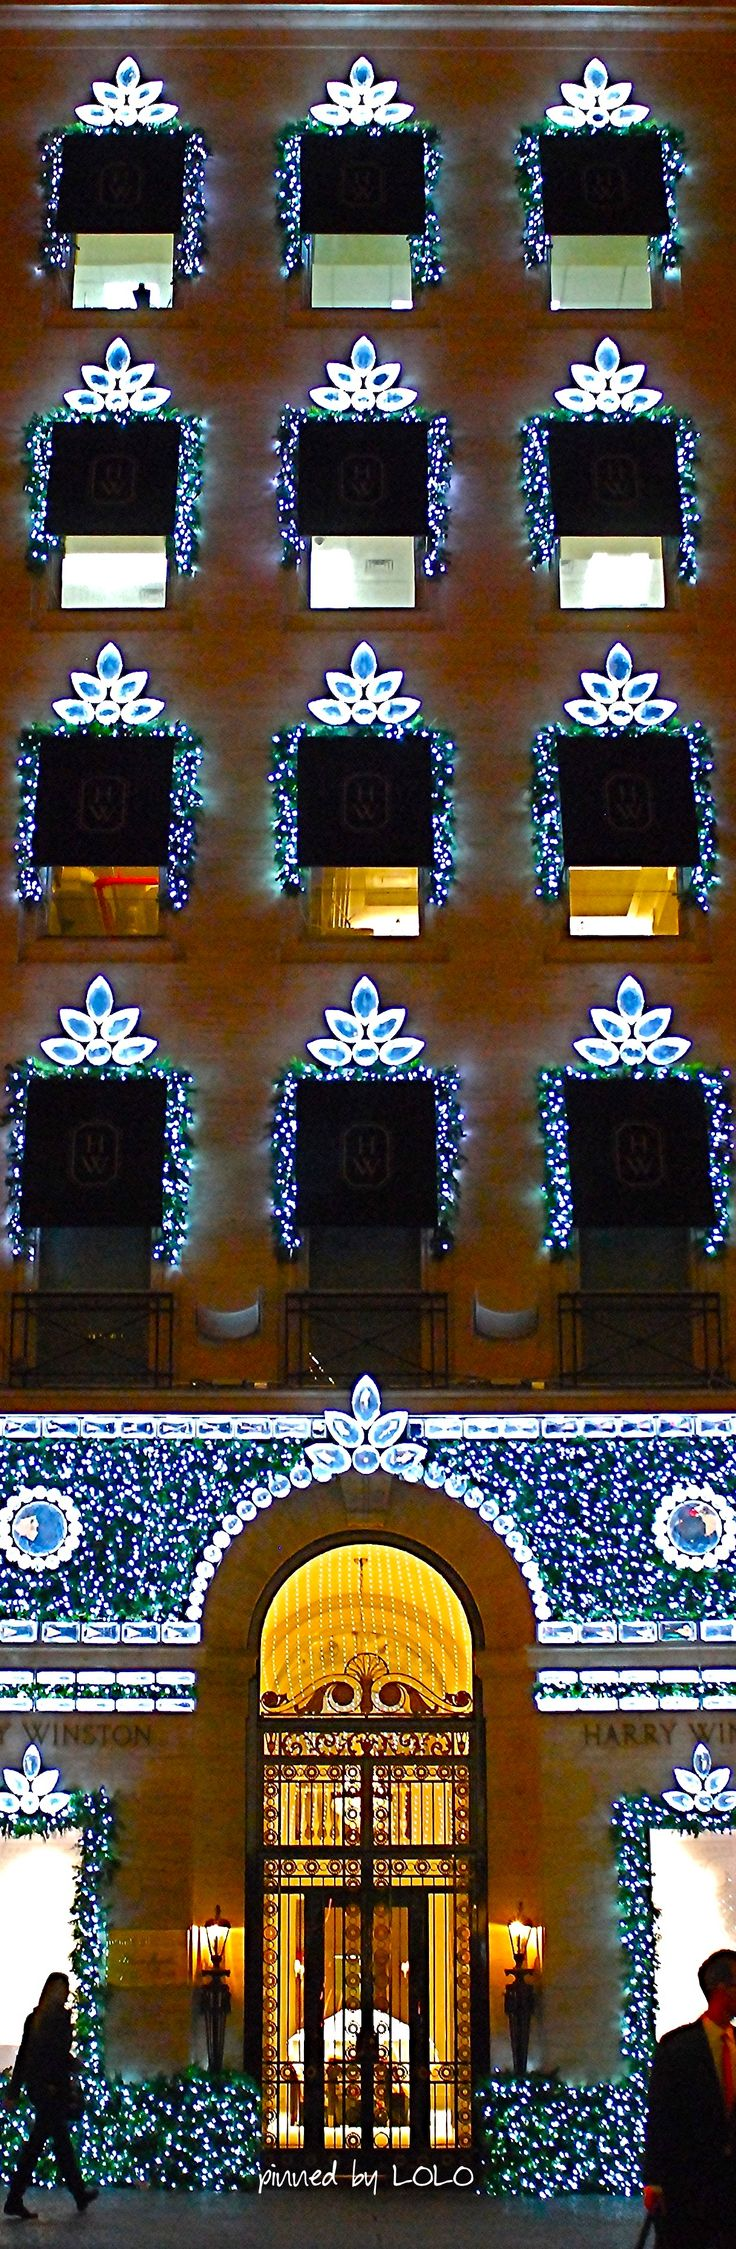 ~Harry Winston Bejeweled Christmas...NYC | The House of Beccaria#